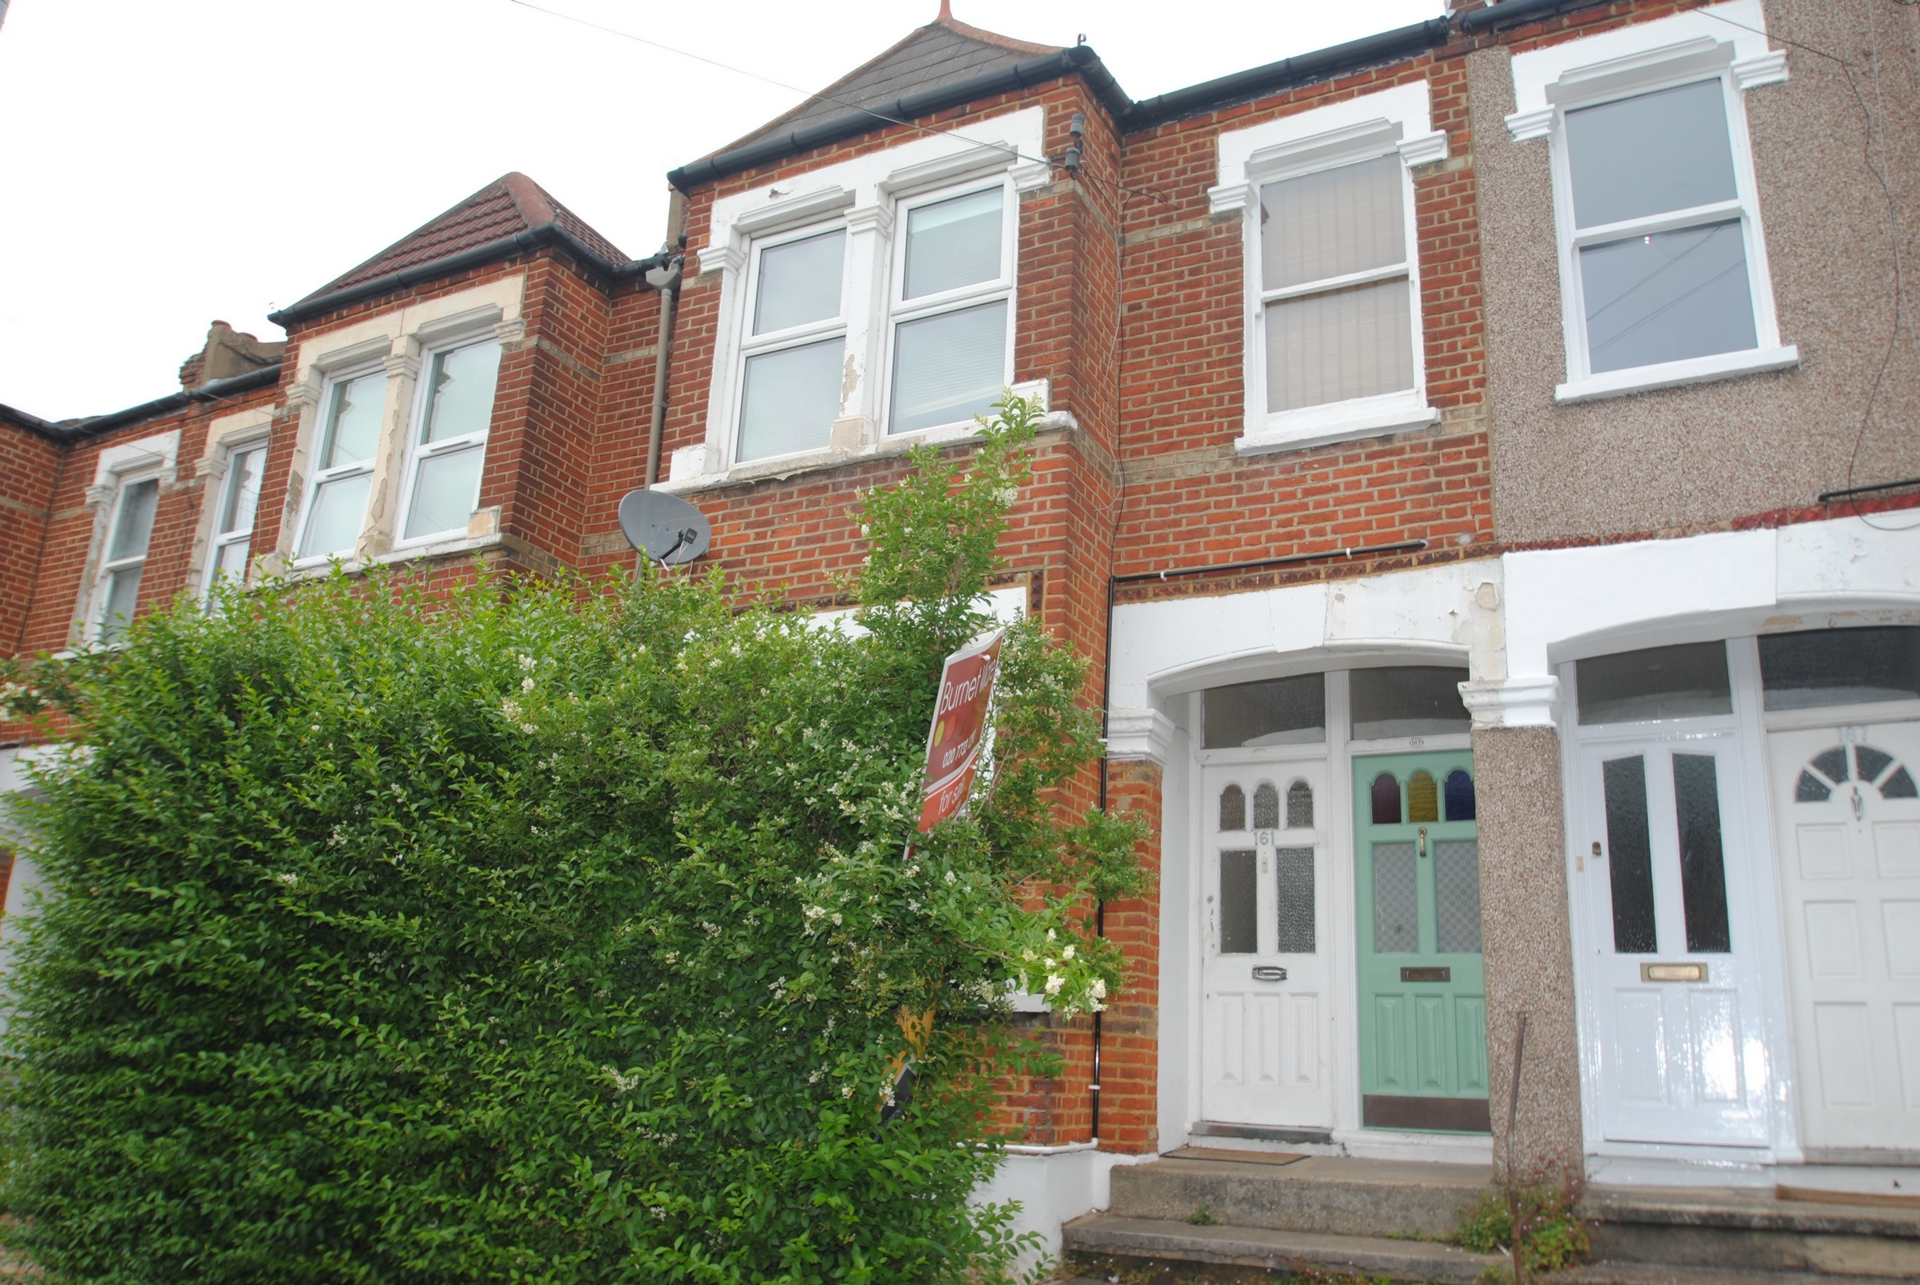 Photo 1, Sellincourt Road, Tooting, SW17